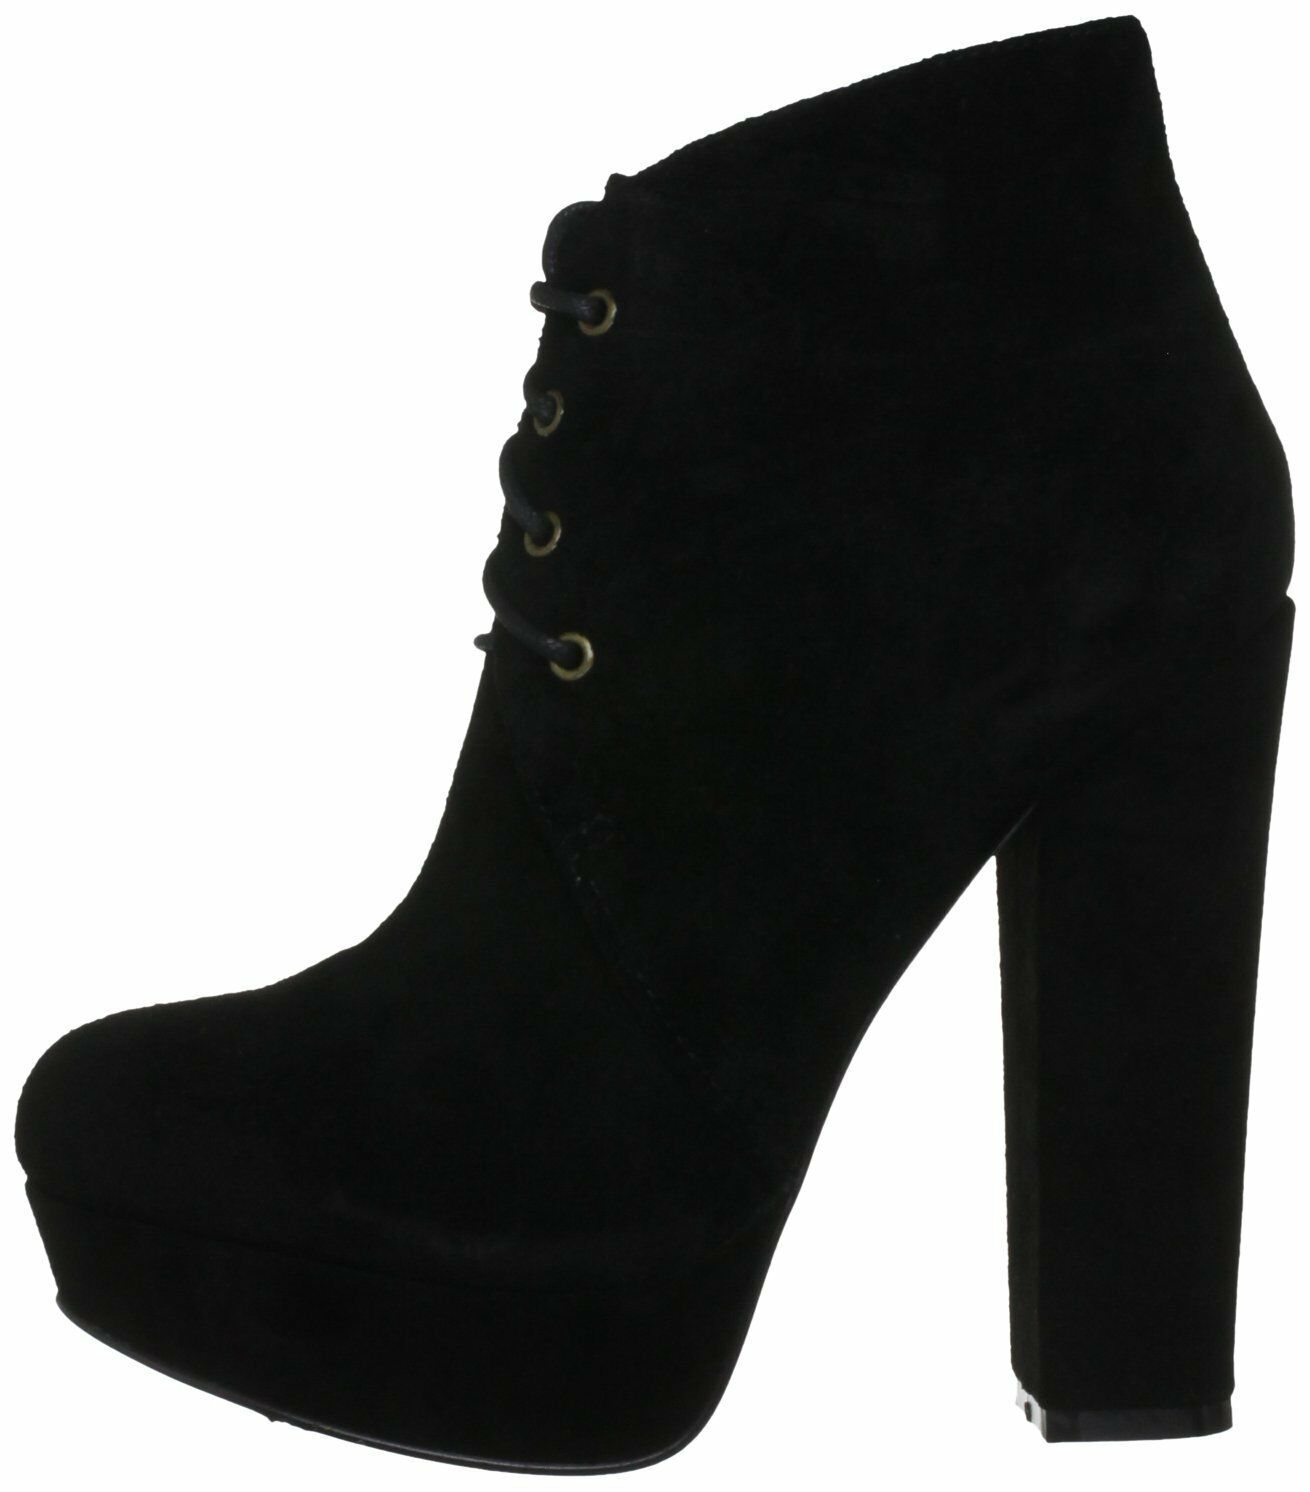 RP RAVEL SIZE SIZE RAVEL 4 / 7 BLACK KELLY REAL SUEDE LEATHER PLATFORM ANKLE Stiefel Schuhe a77c00